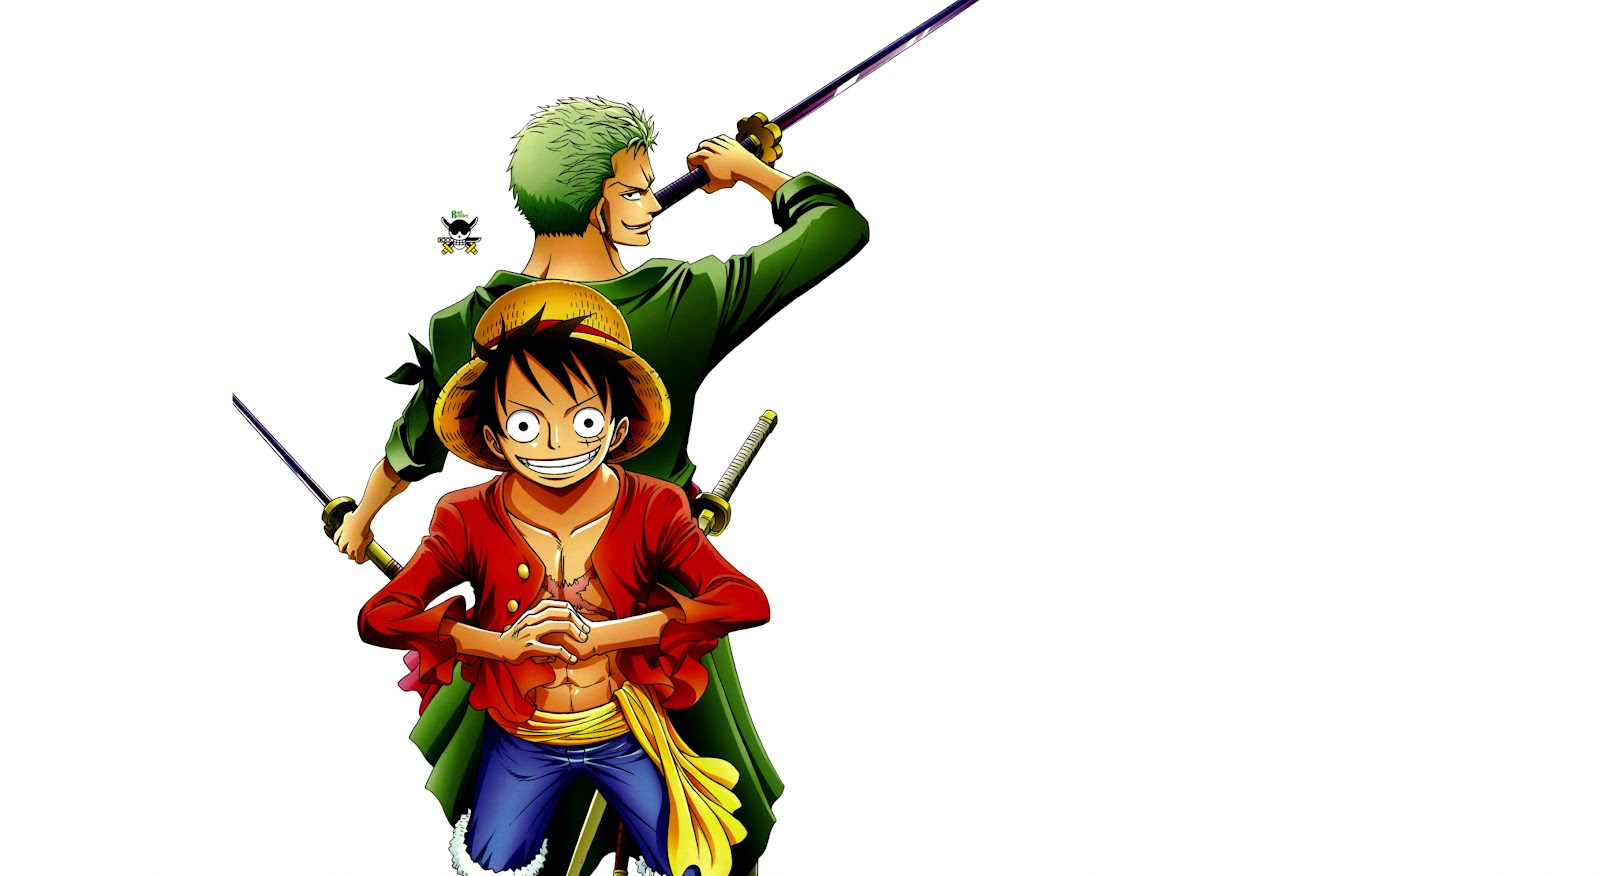 Luffy Zoro One Piece Wallpaper Link Wallpapers